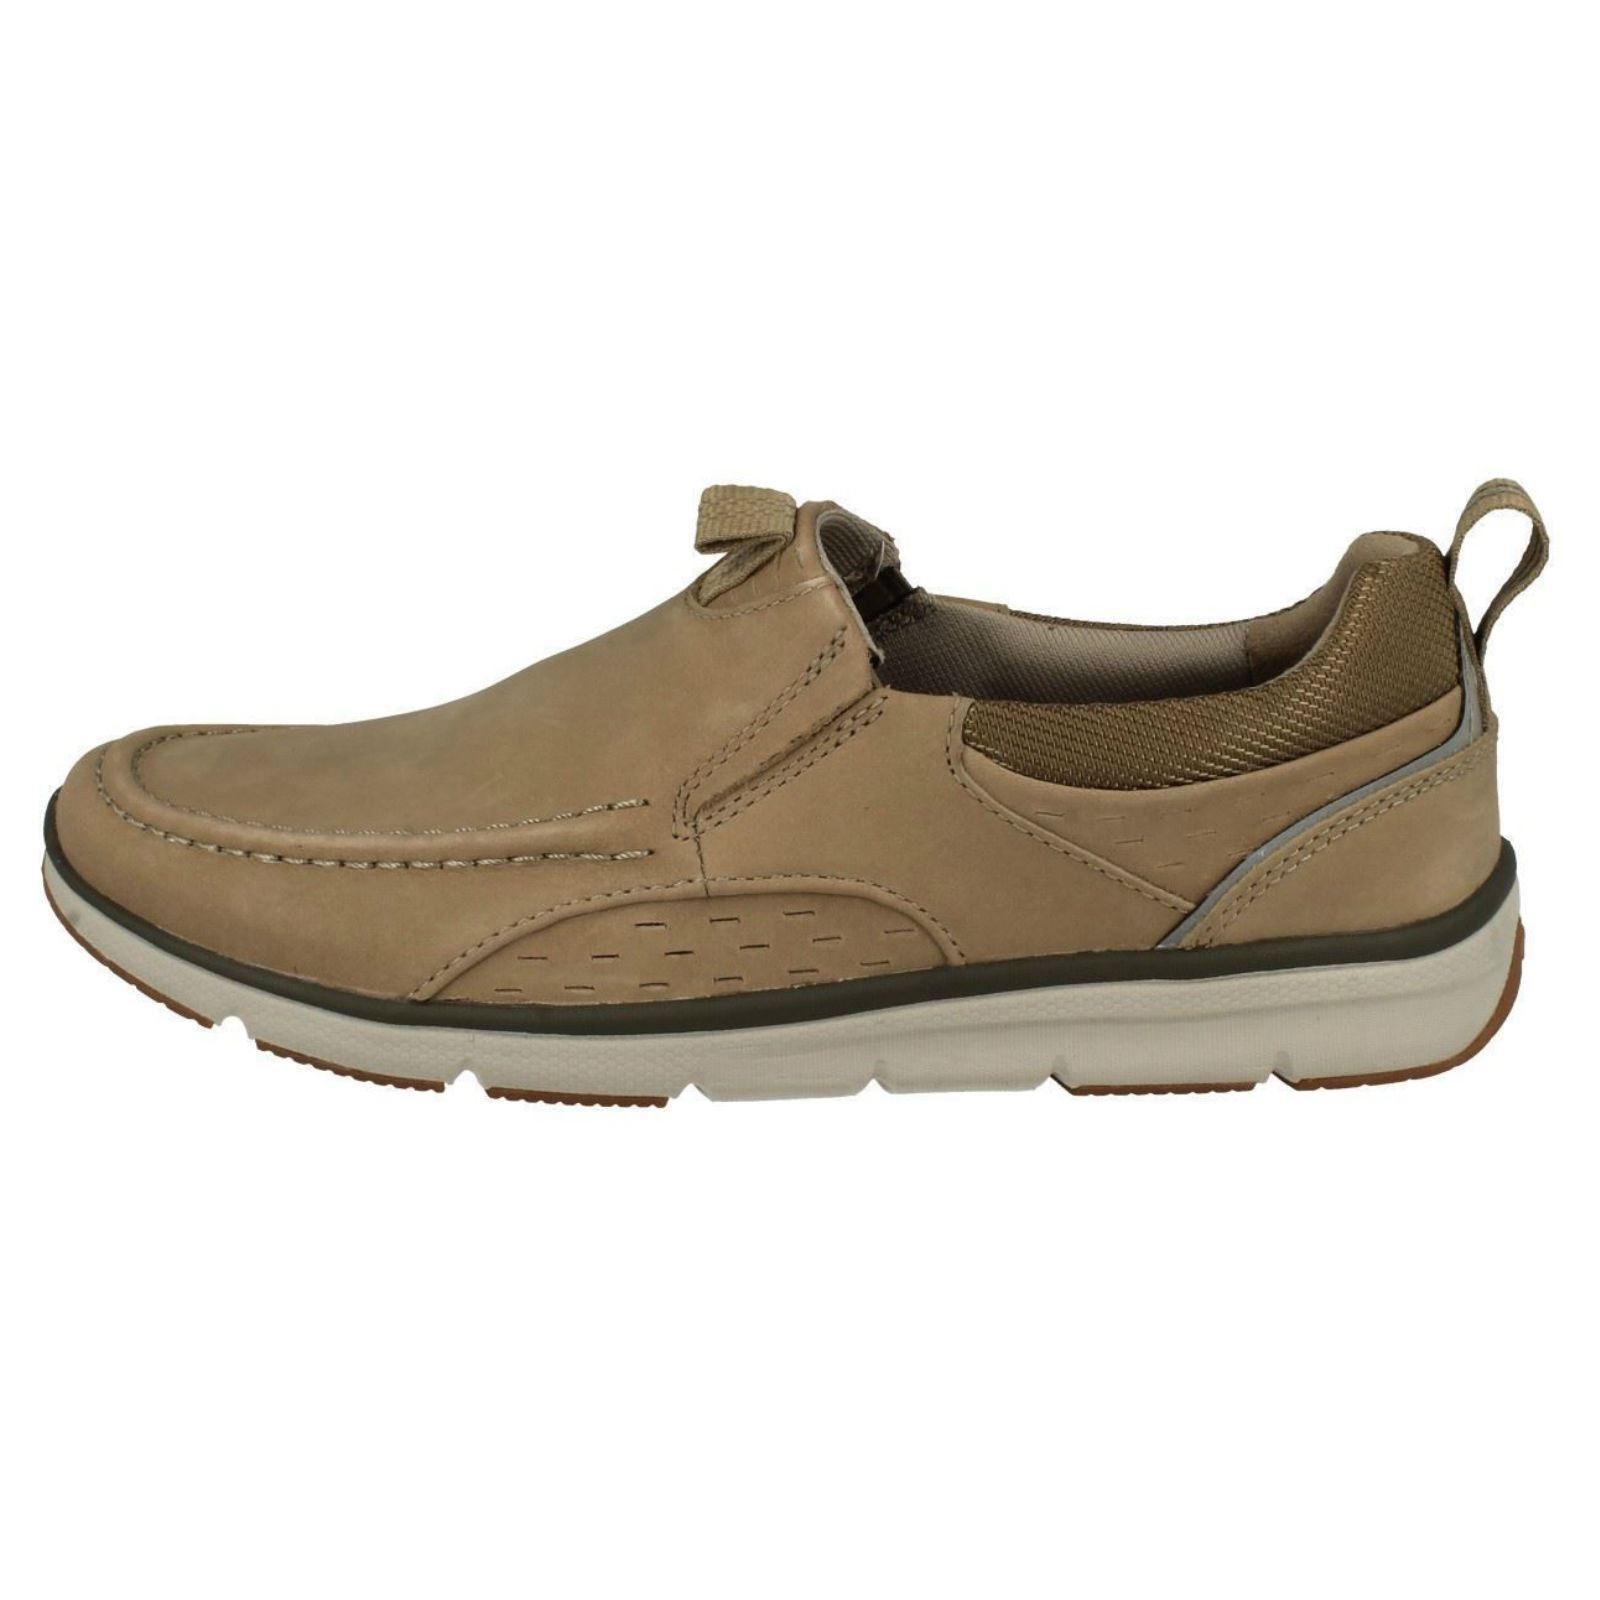 On beige Row Moccasin Clarks Mens Sand Style Slip Orson Shoes zHWqPI